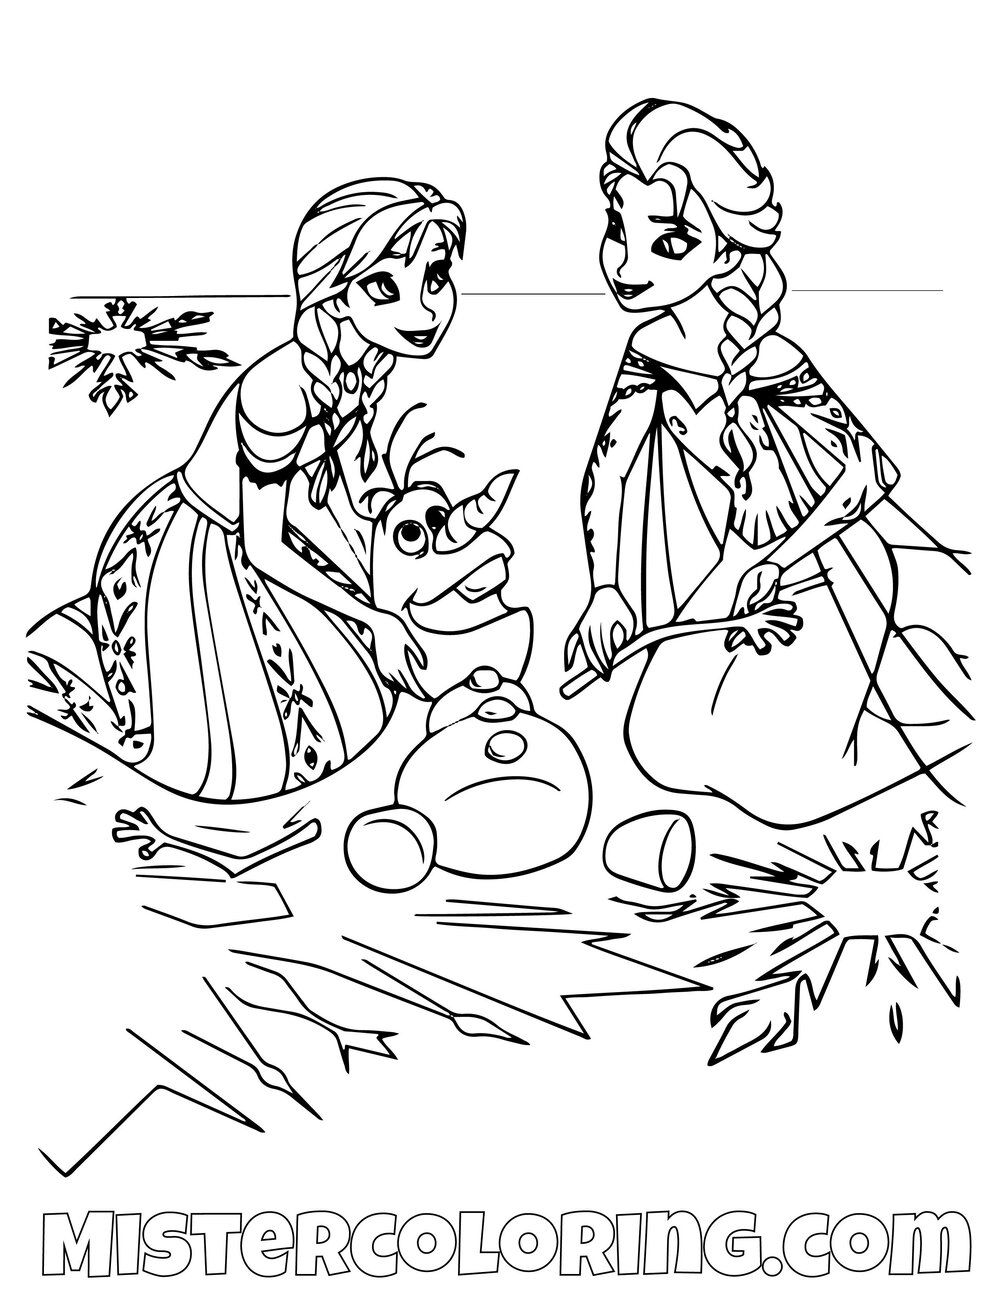 Coloring Page About Frozen Disney Movie Nice Drawing With Elsa And Her Friend Olaf C Elsa Coloring Pages Disney Princess Coloring Pages Frozen Coloring Pages